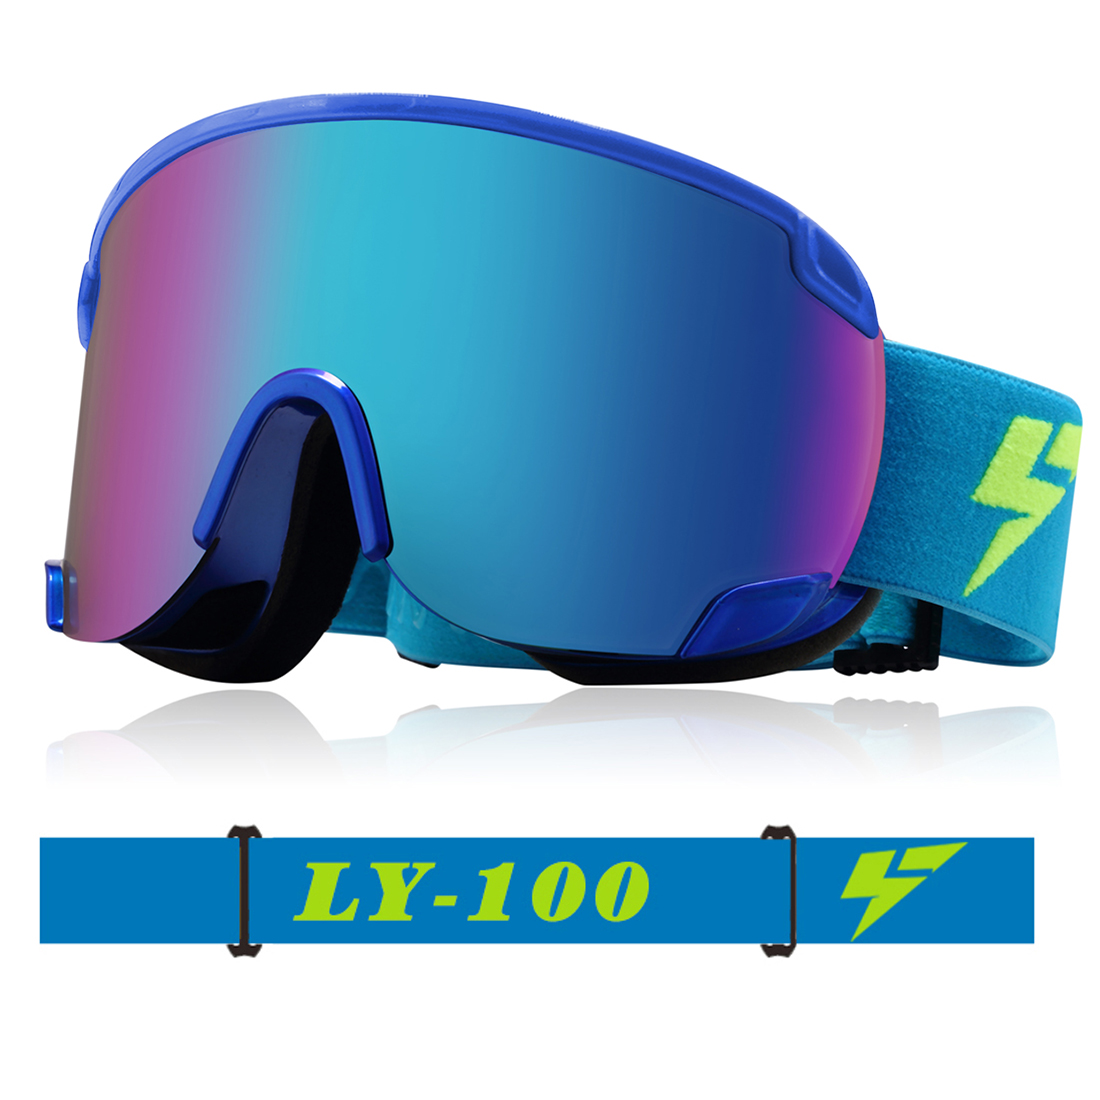 Ski Snowmobile Snowboard Goggles OTG Anti-fog UV400 Protect Anti-slip BU for Women Men by Unique-Bargains